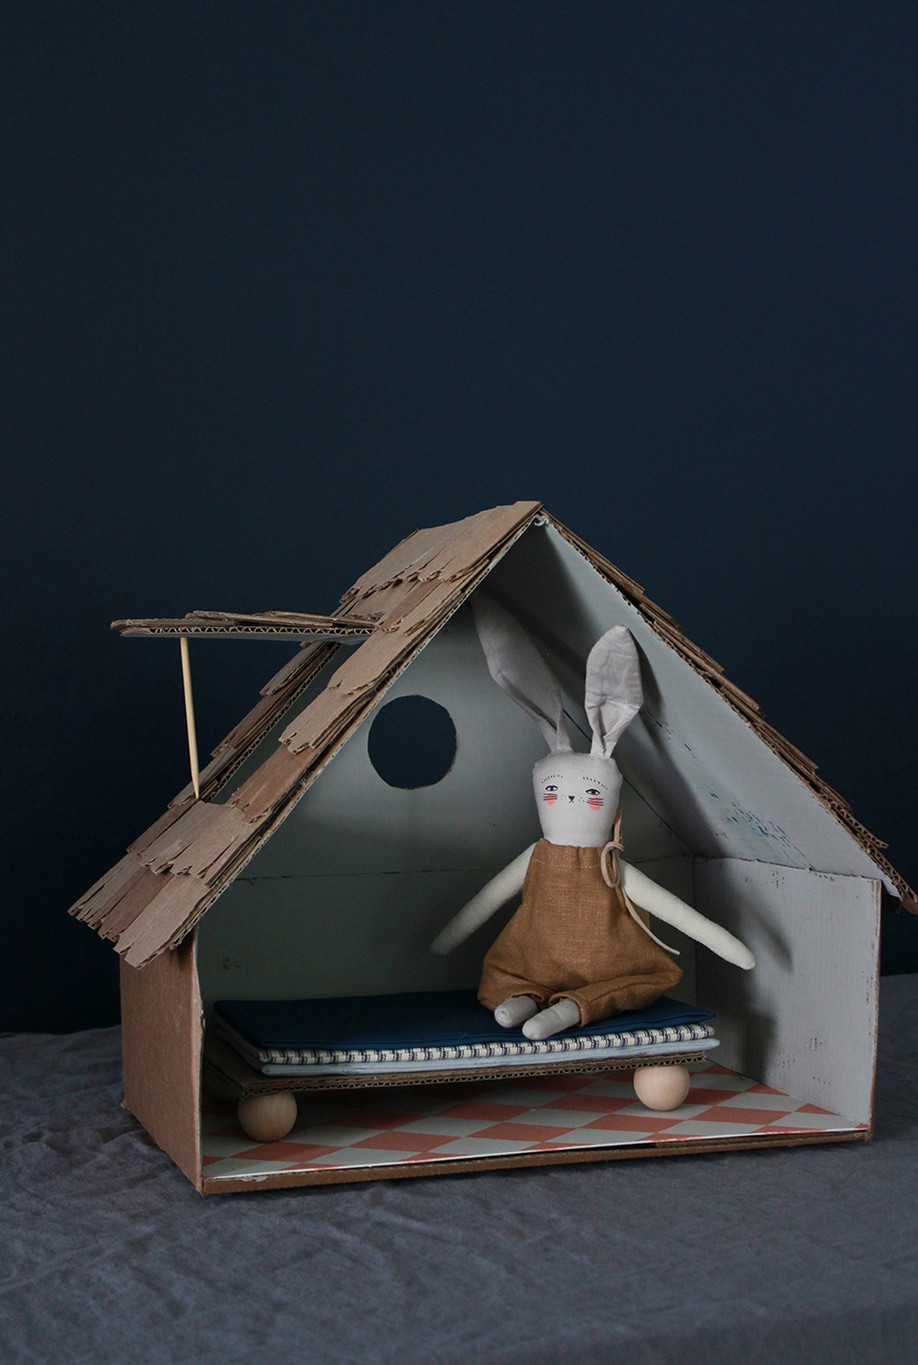 Make a Cardboard Cottage for Bitty Bunny Benjamin!